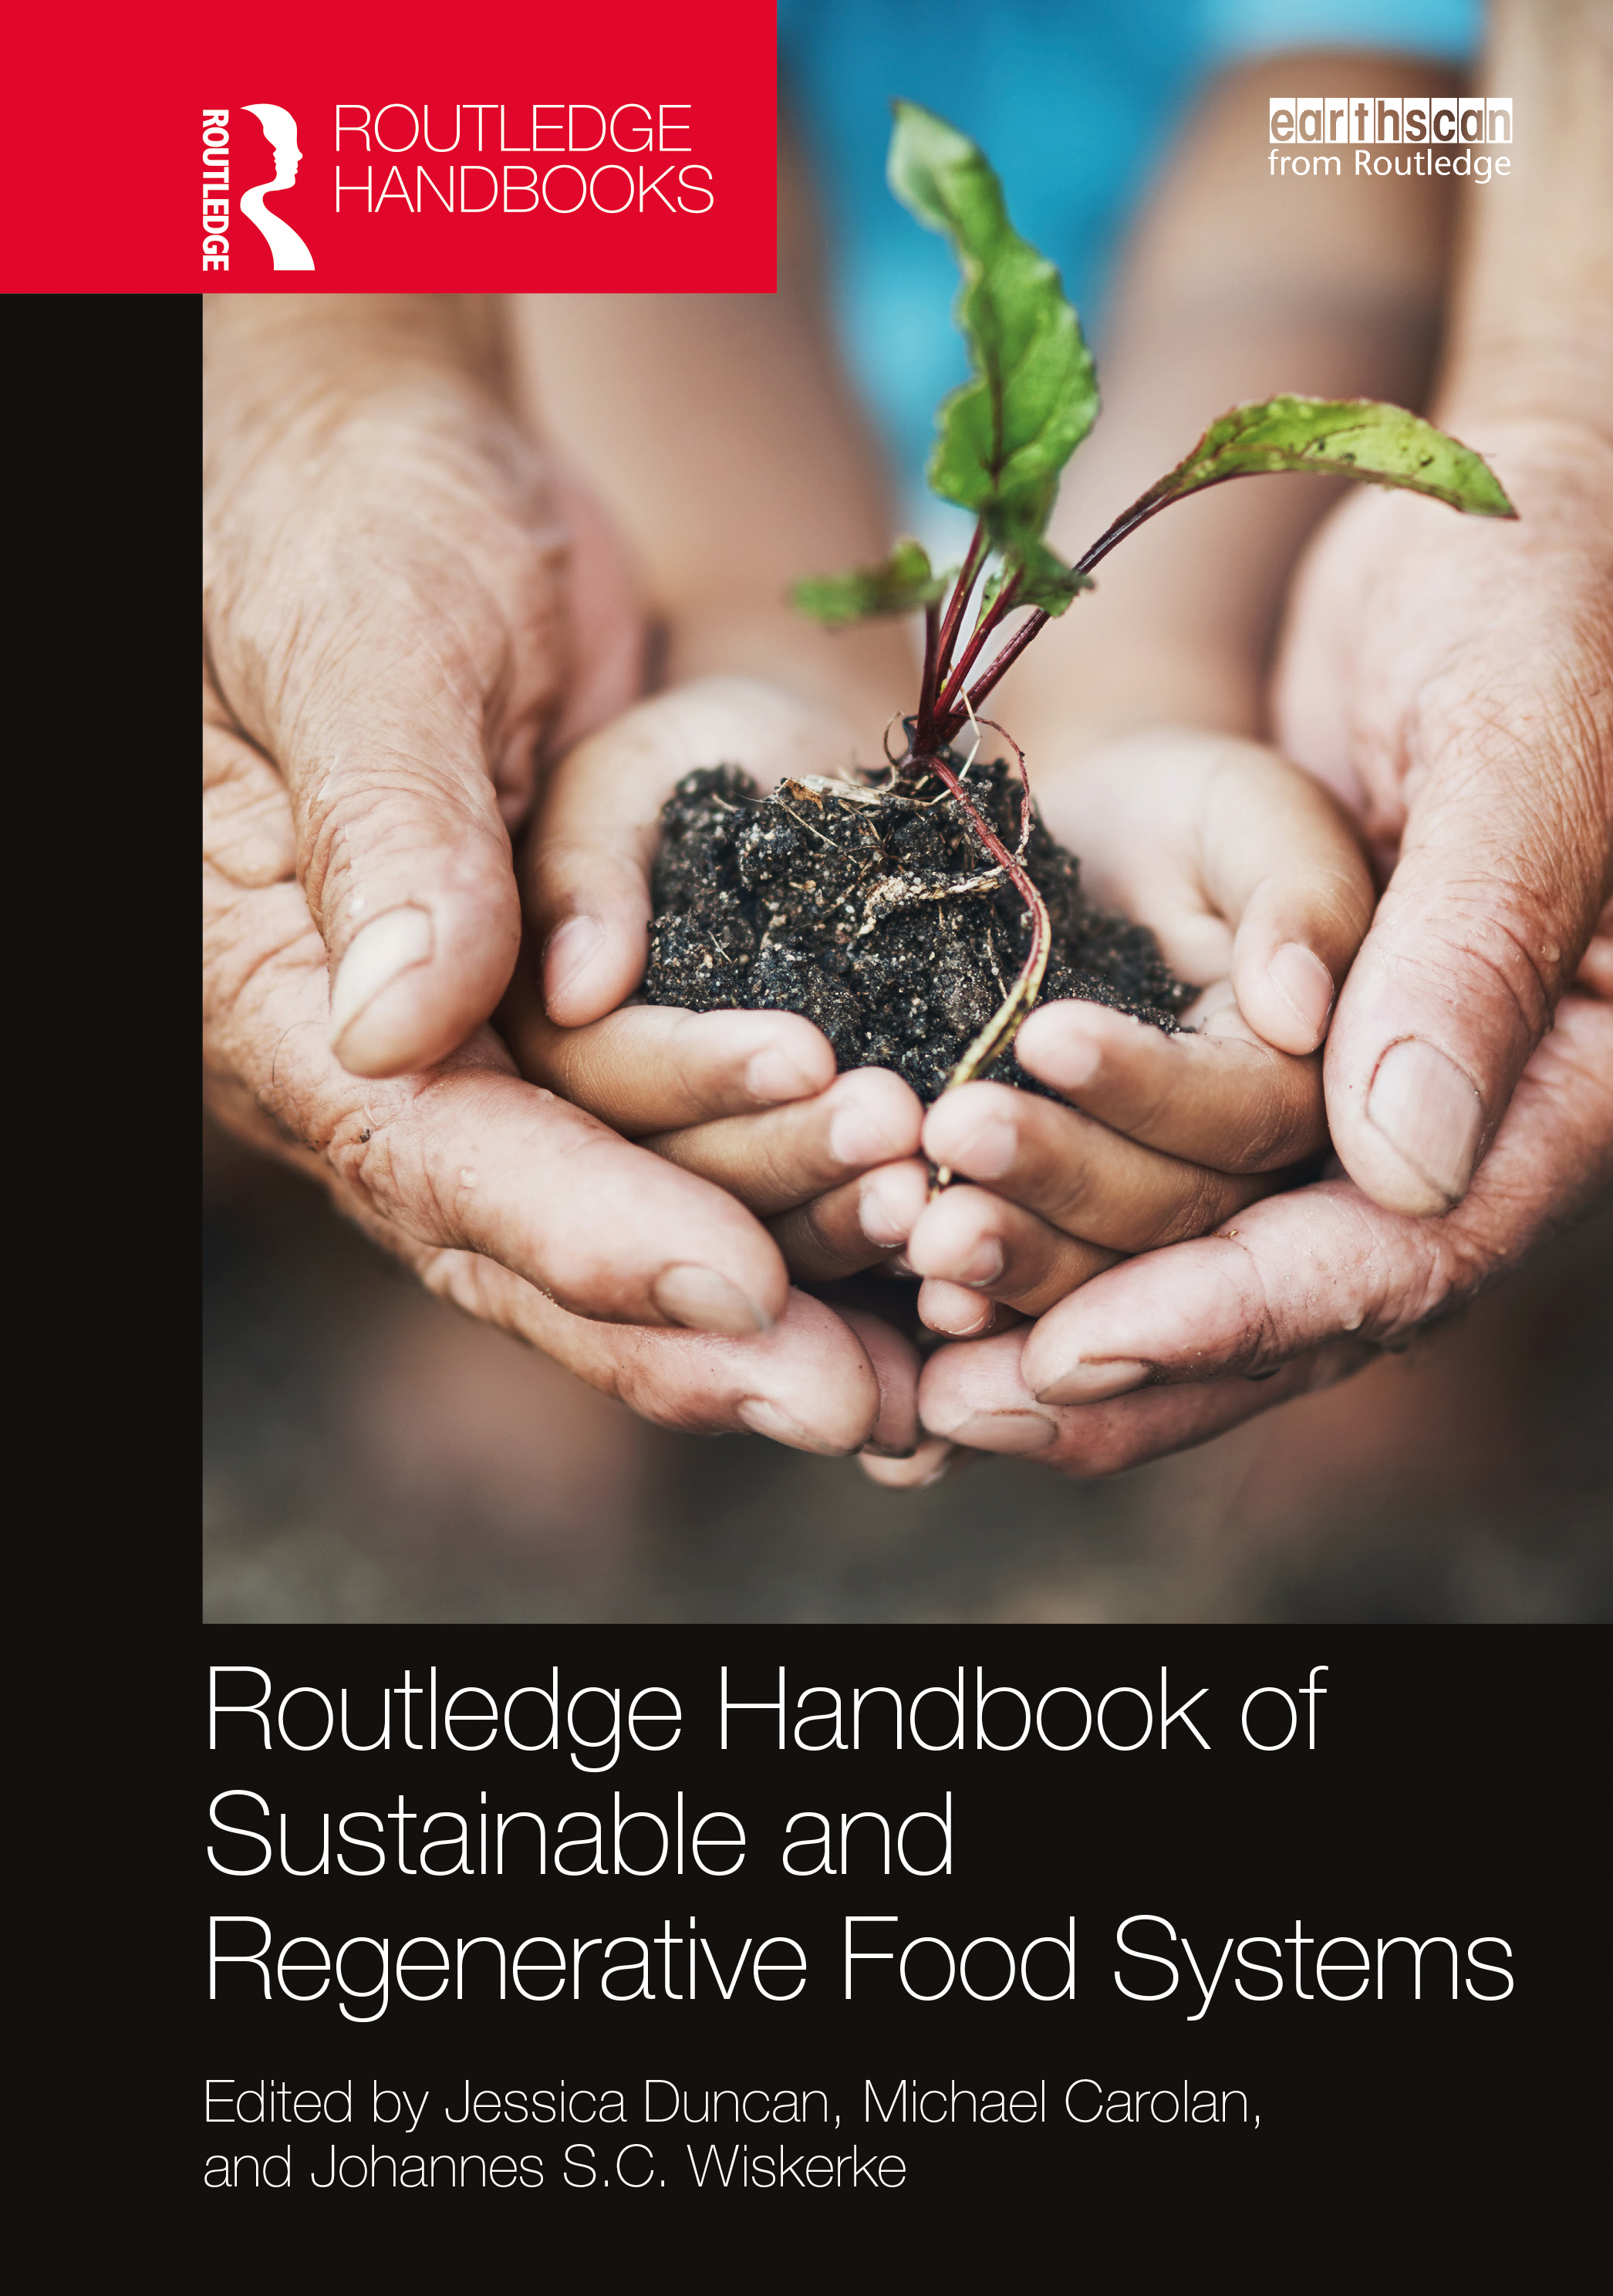 Routledge Handbook of Sustainable and Regenerative Food Systems book cover